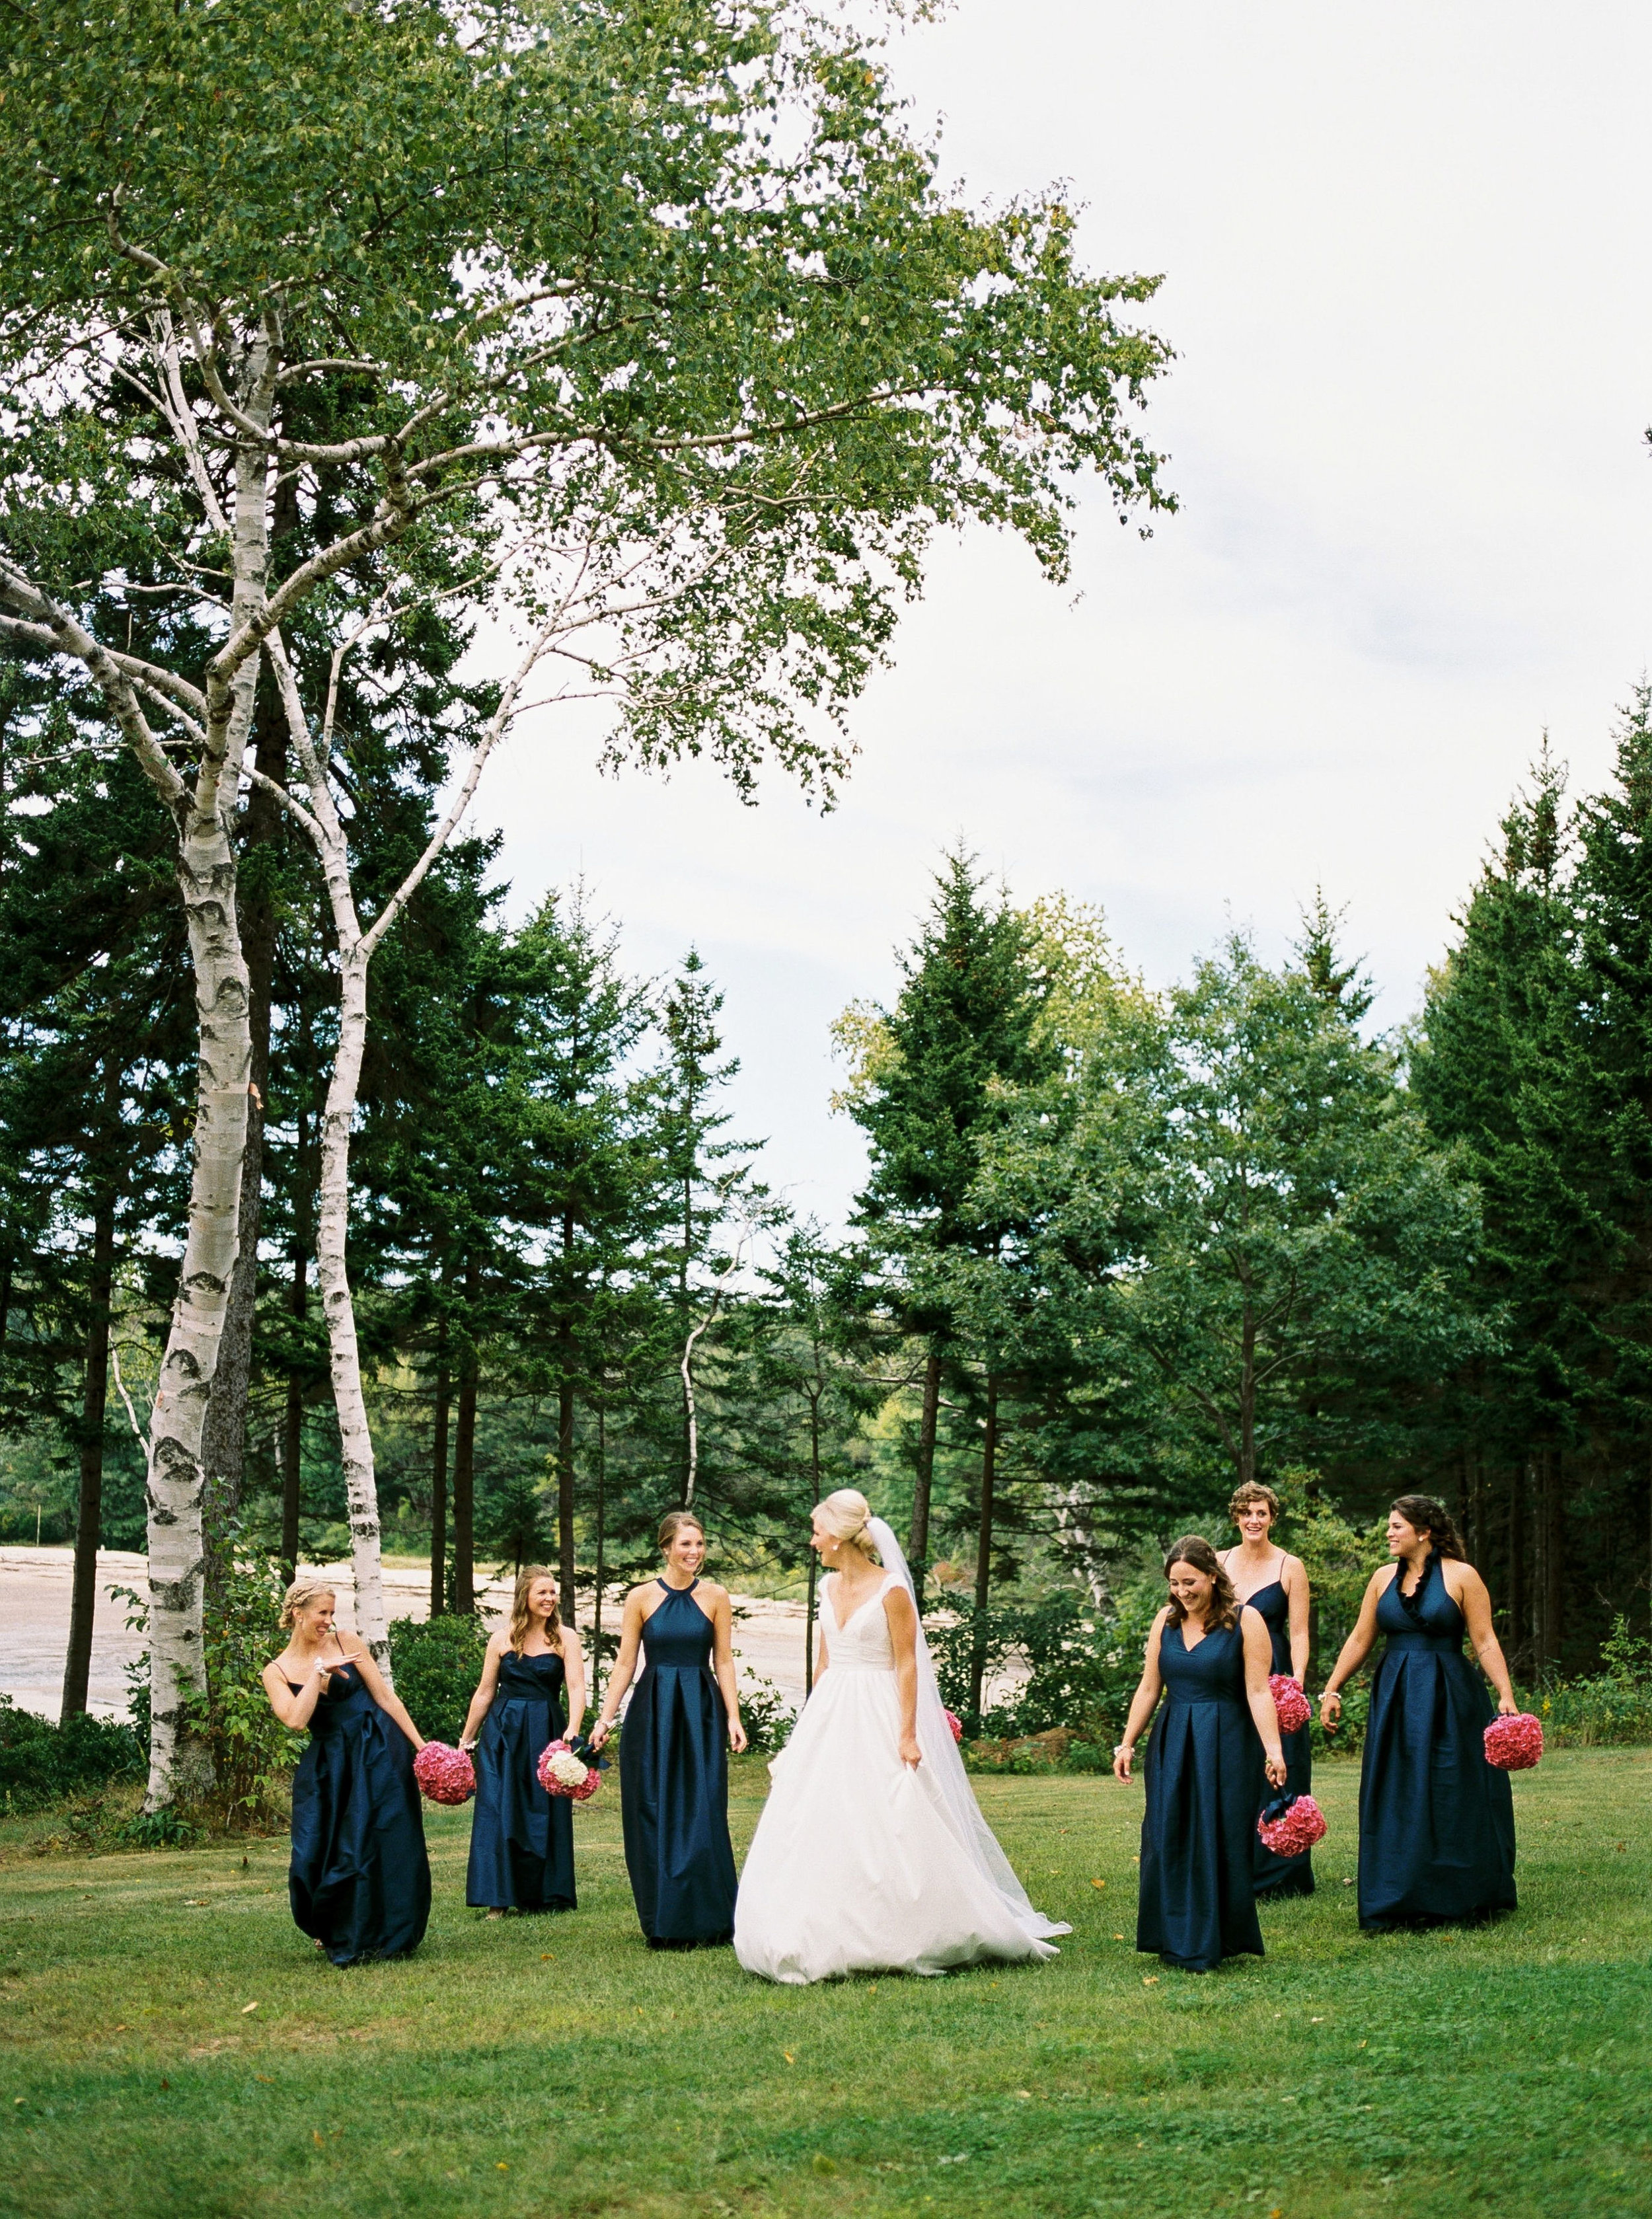 Alexandra-Elise-Photography-Ali-Reed-Chebeague-Island-Maine-Elizabeth-Josh-Wedding-Party-028.jpg